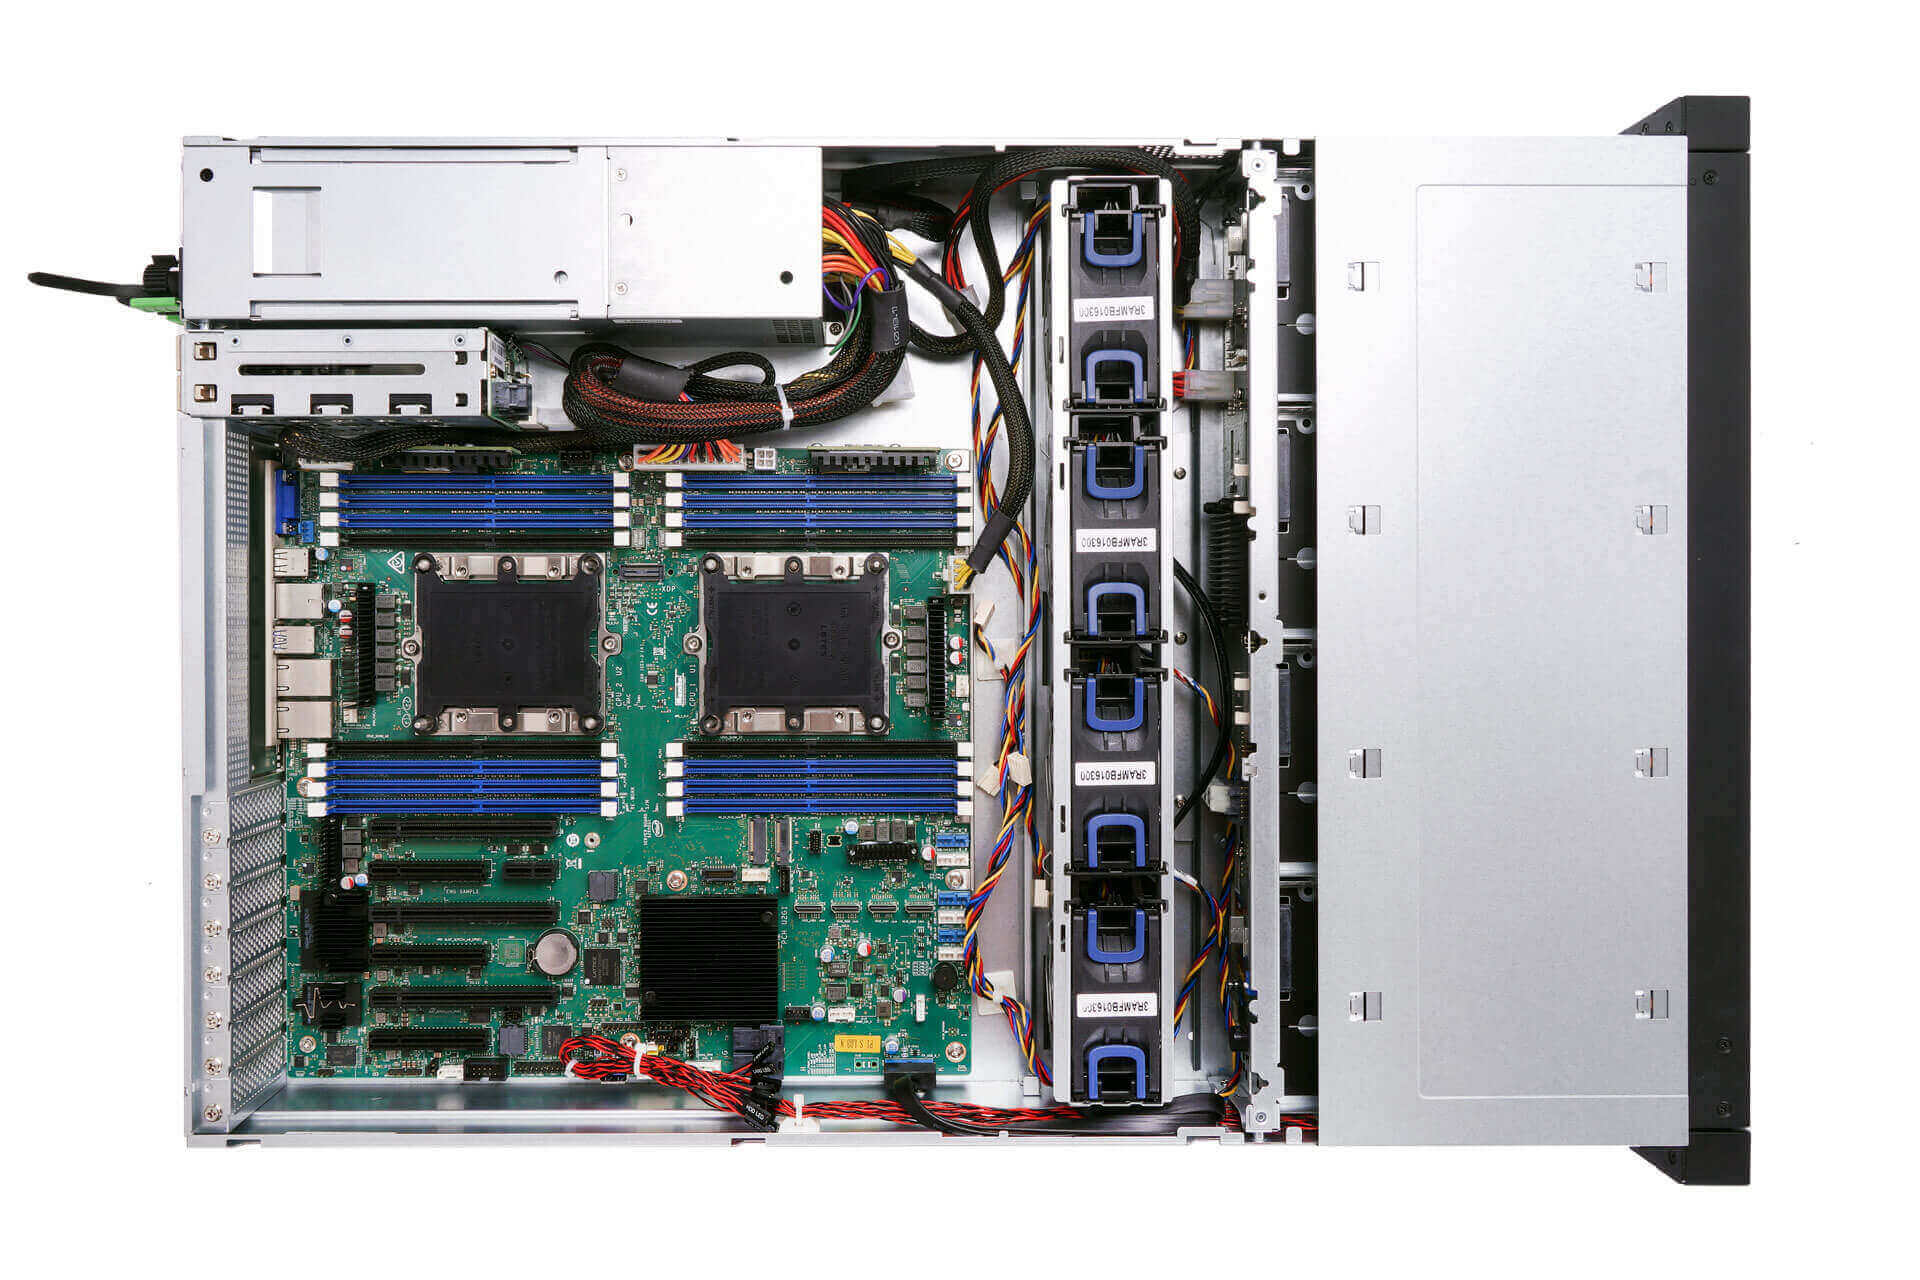 IW-RS212-07 - server system assembly